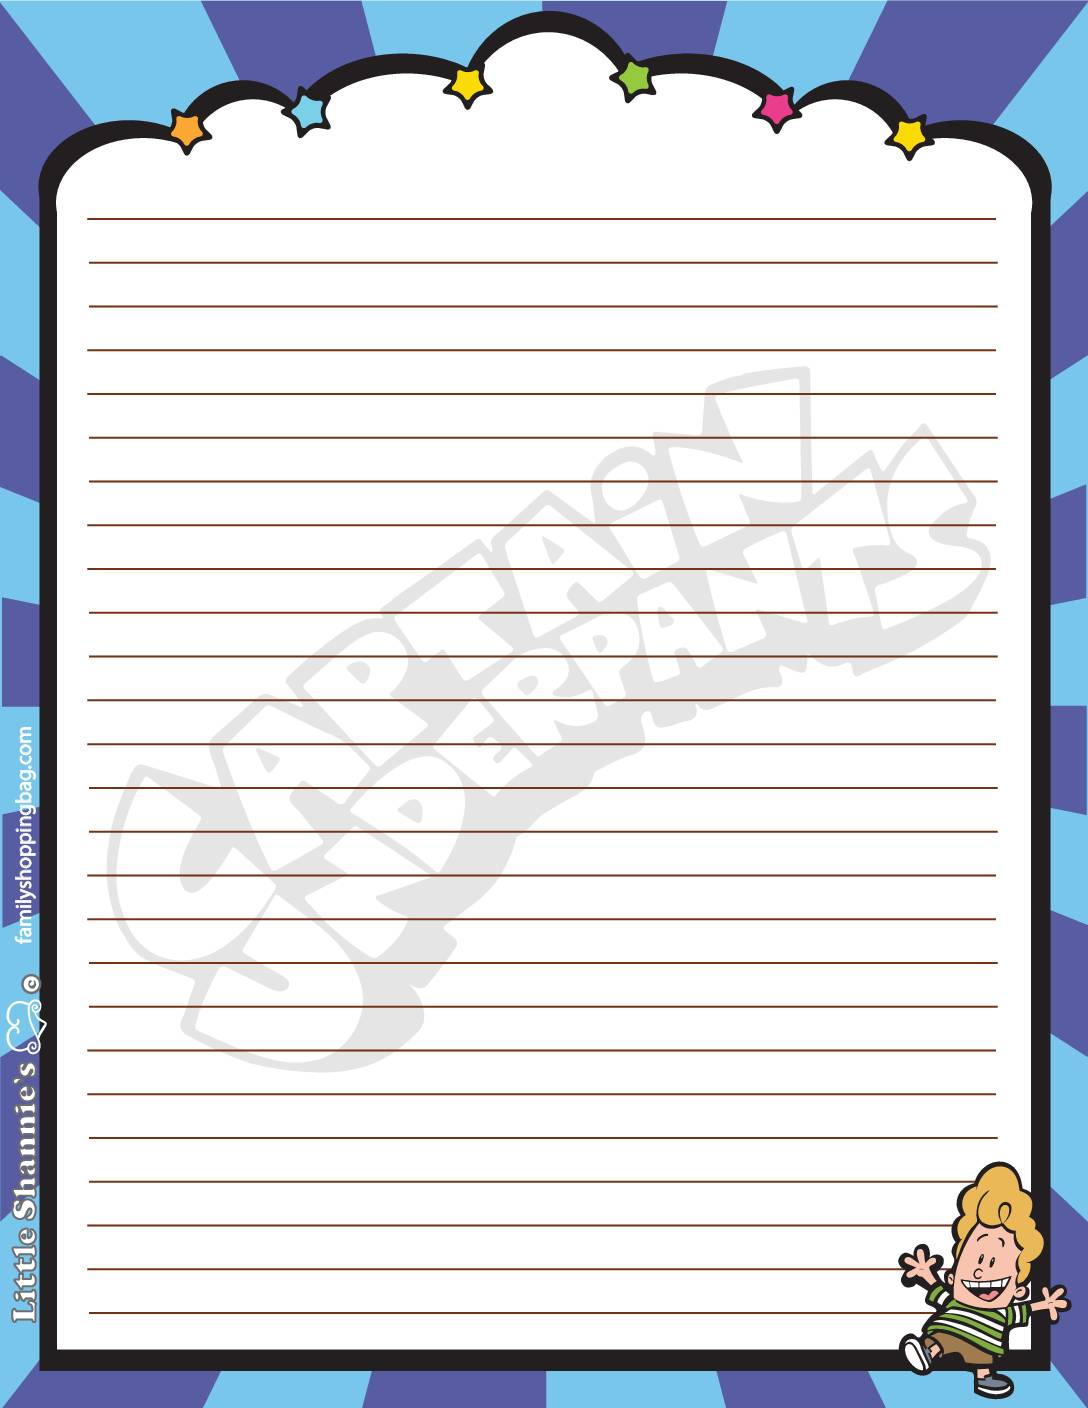 Stationery Captain Underpants